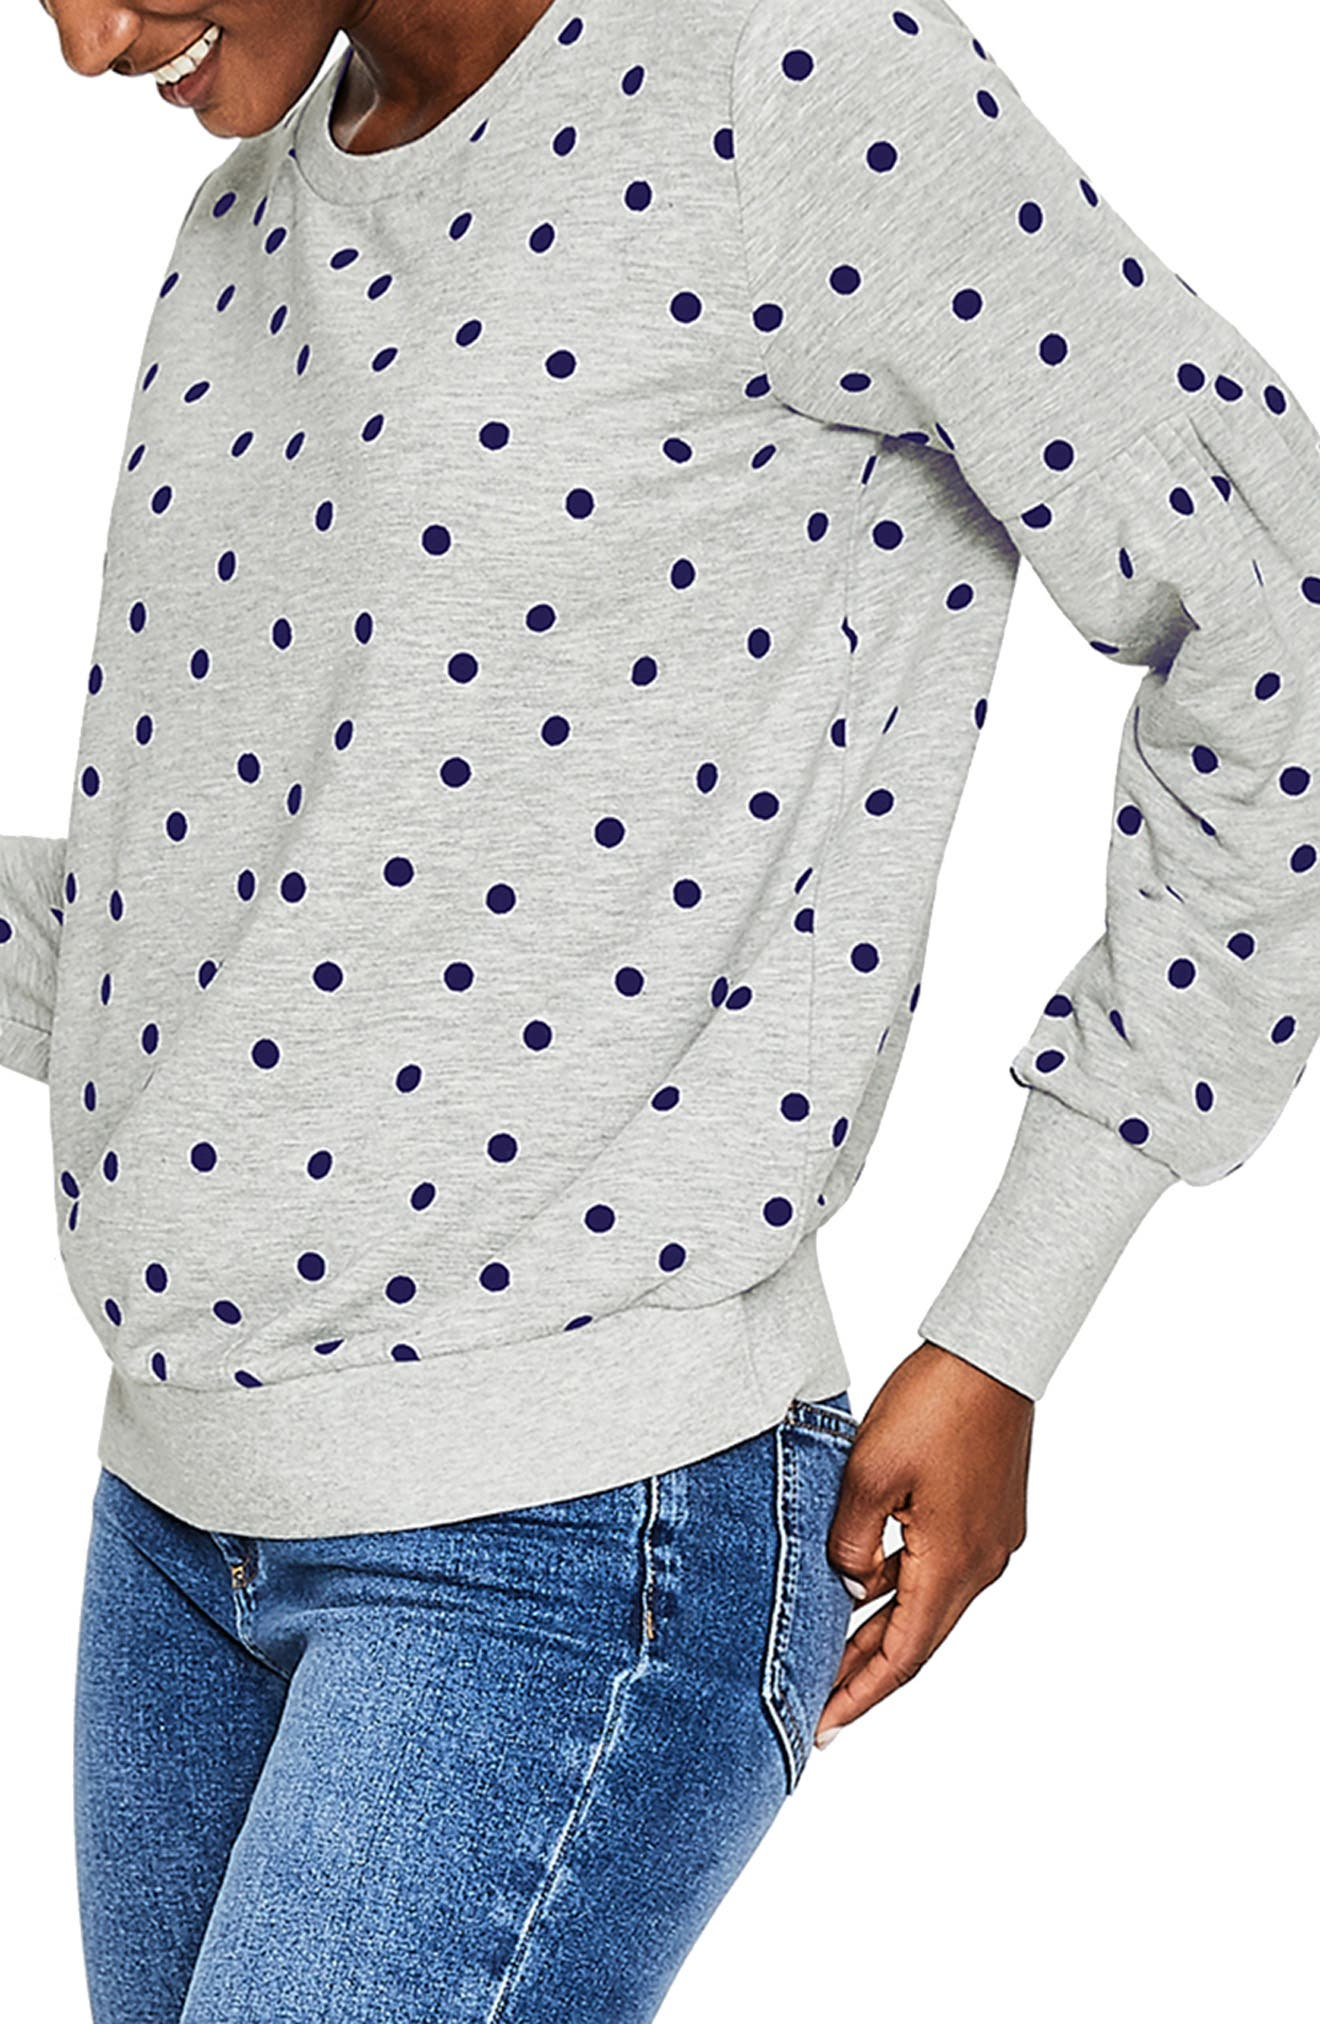 Renee Sweatshirt,                             Alternate thumbnail 3, color,                             GREY MARL FLOCKED SPOT